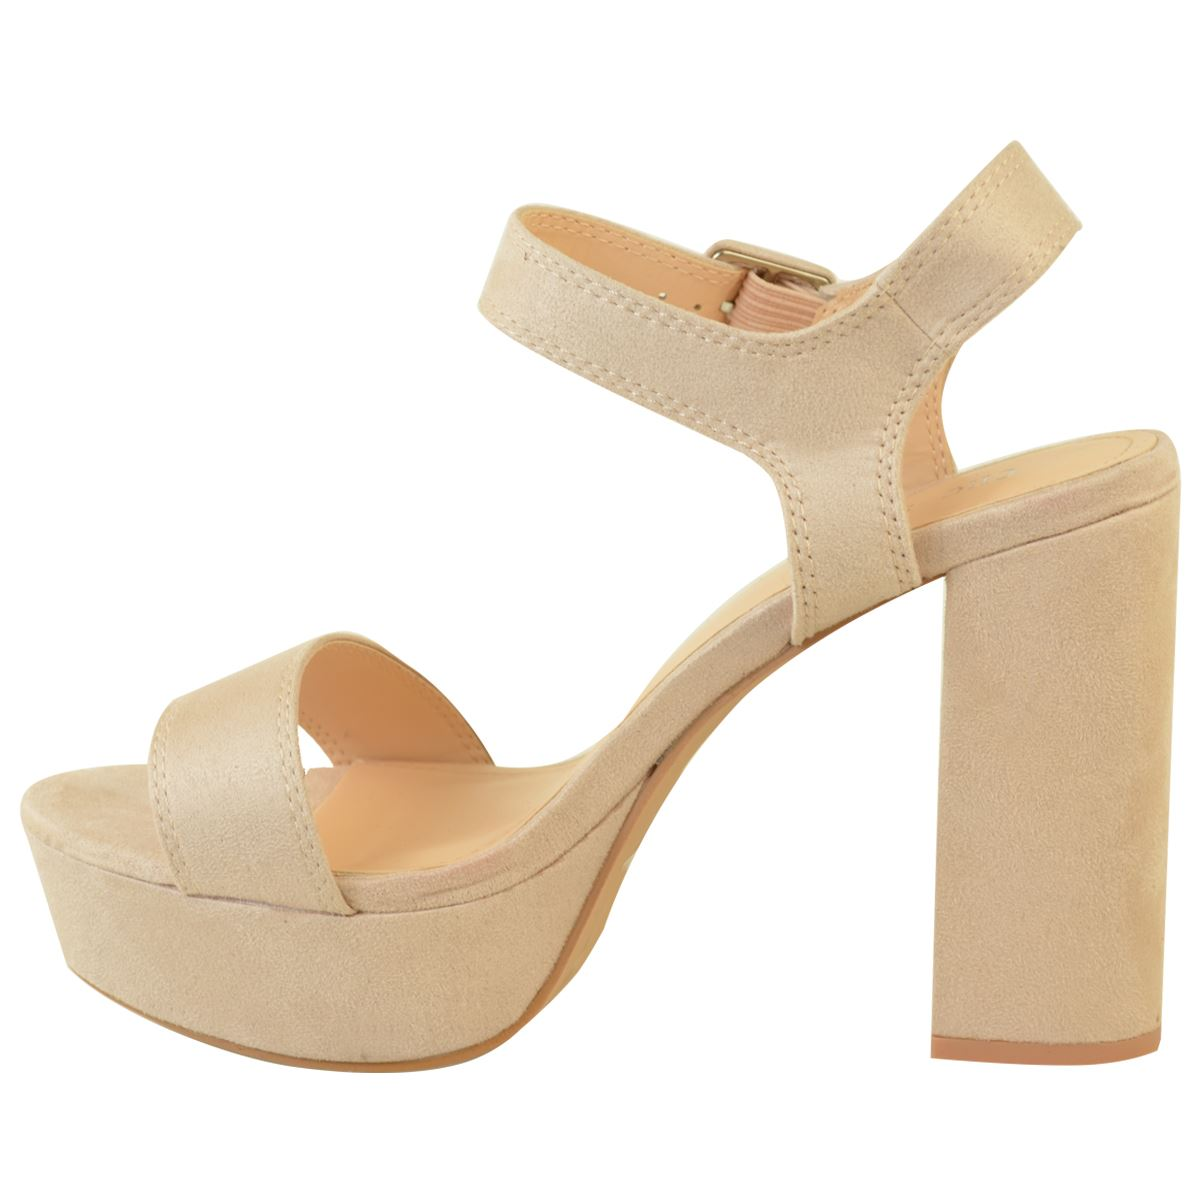 New-Womens-Summer-Platform-High-Heel-Sandals-Ladies-Open-Toe-Strappy-Party-Shoes thumbnail 35